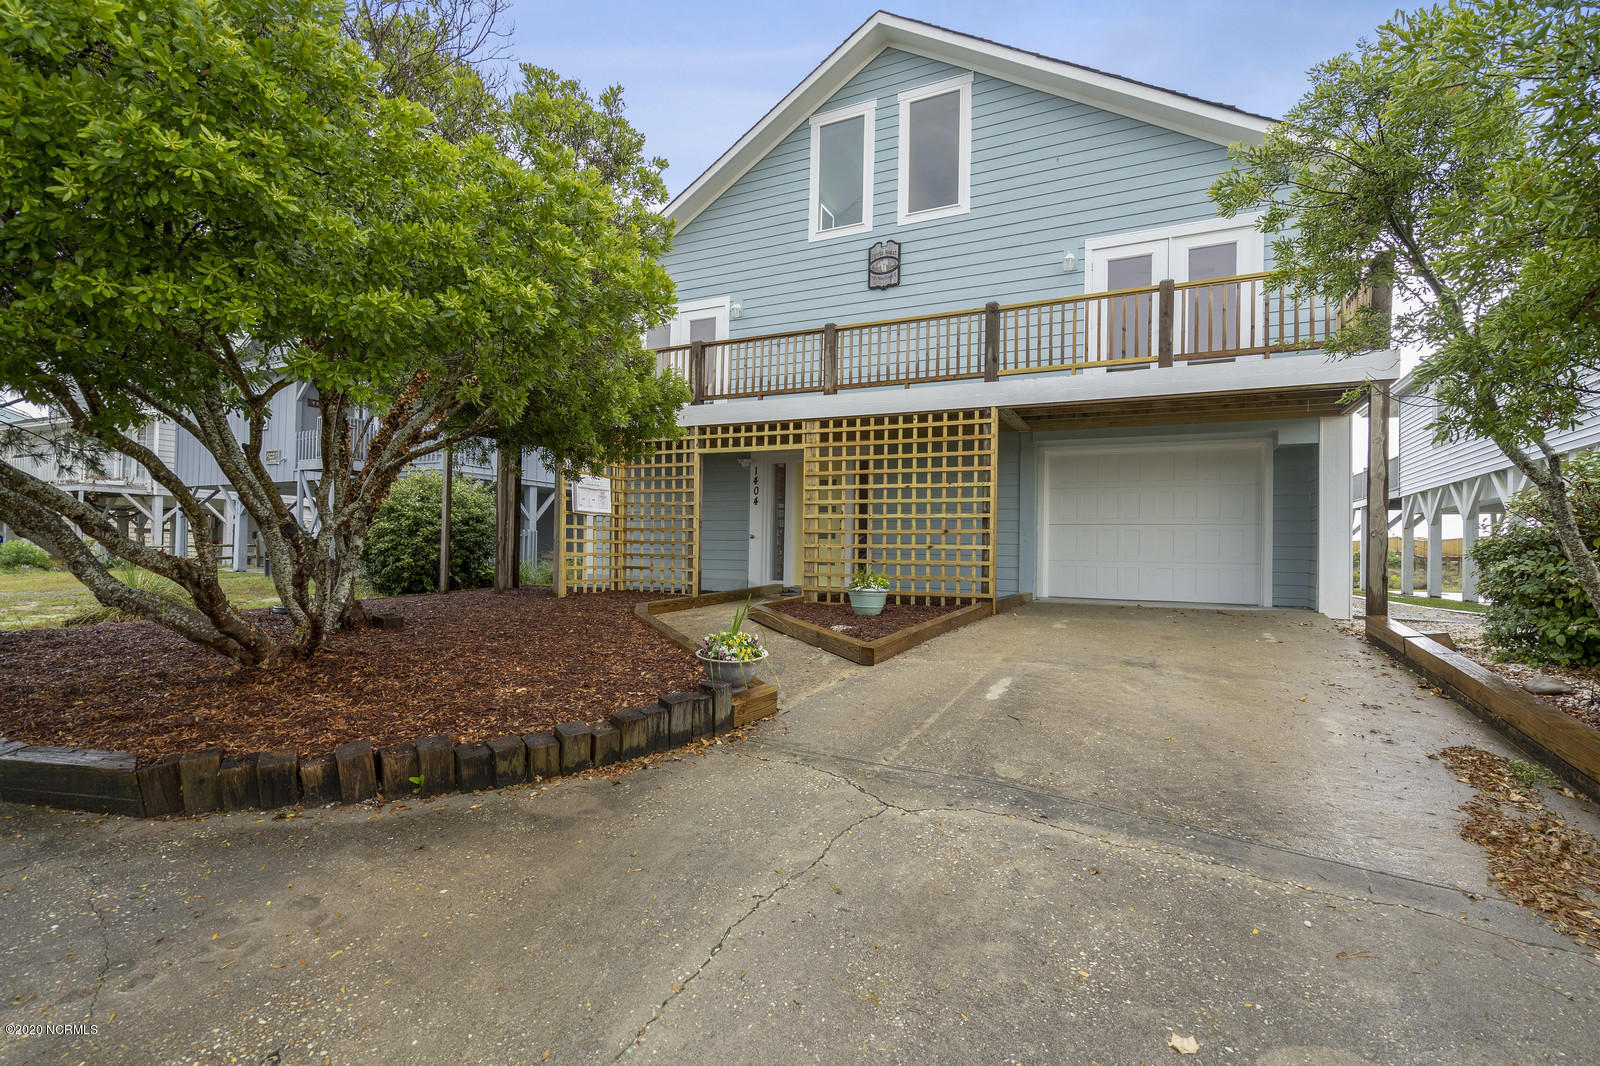 1404 E Main Street Sunset Beach, NC 28468